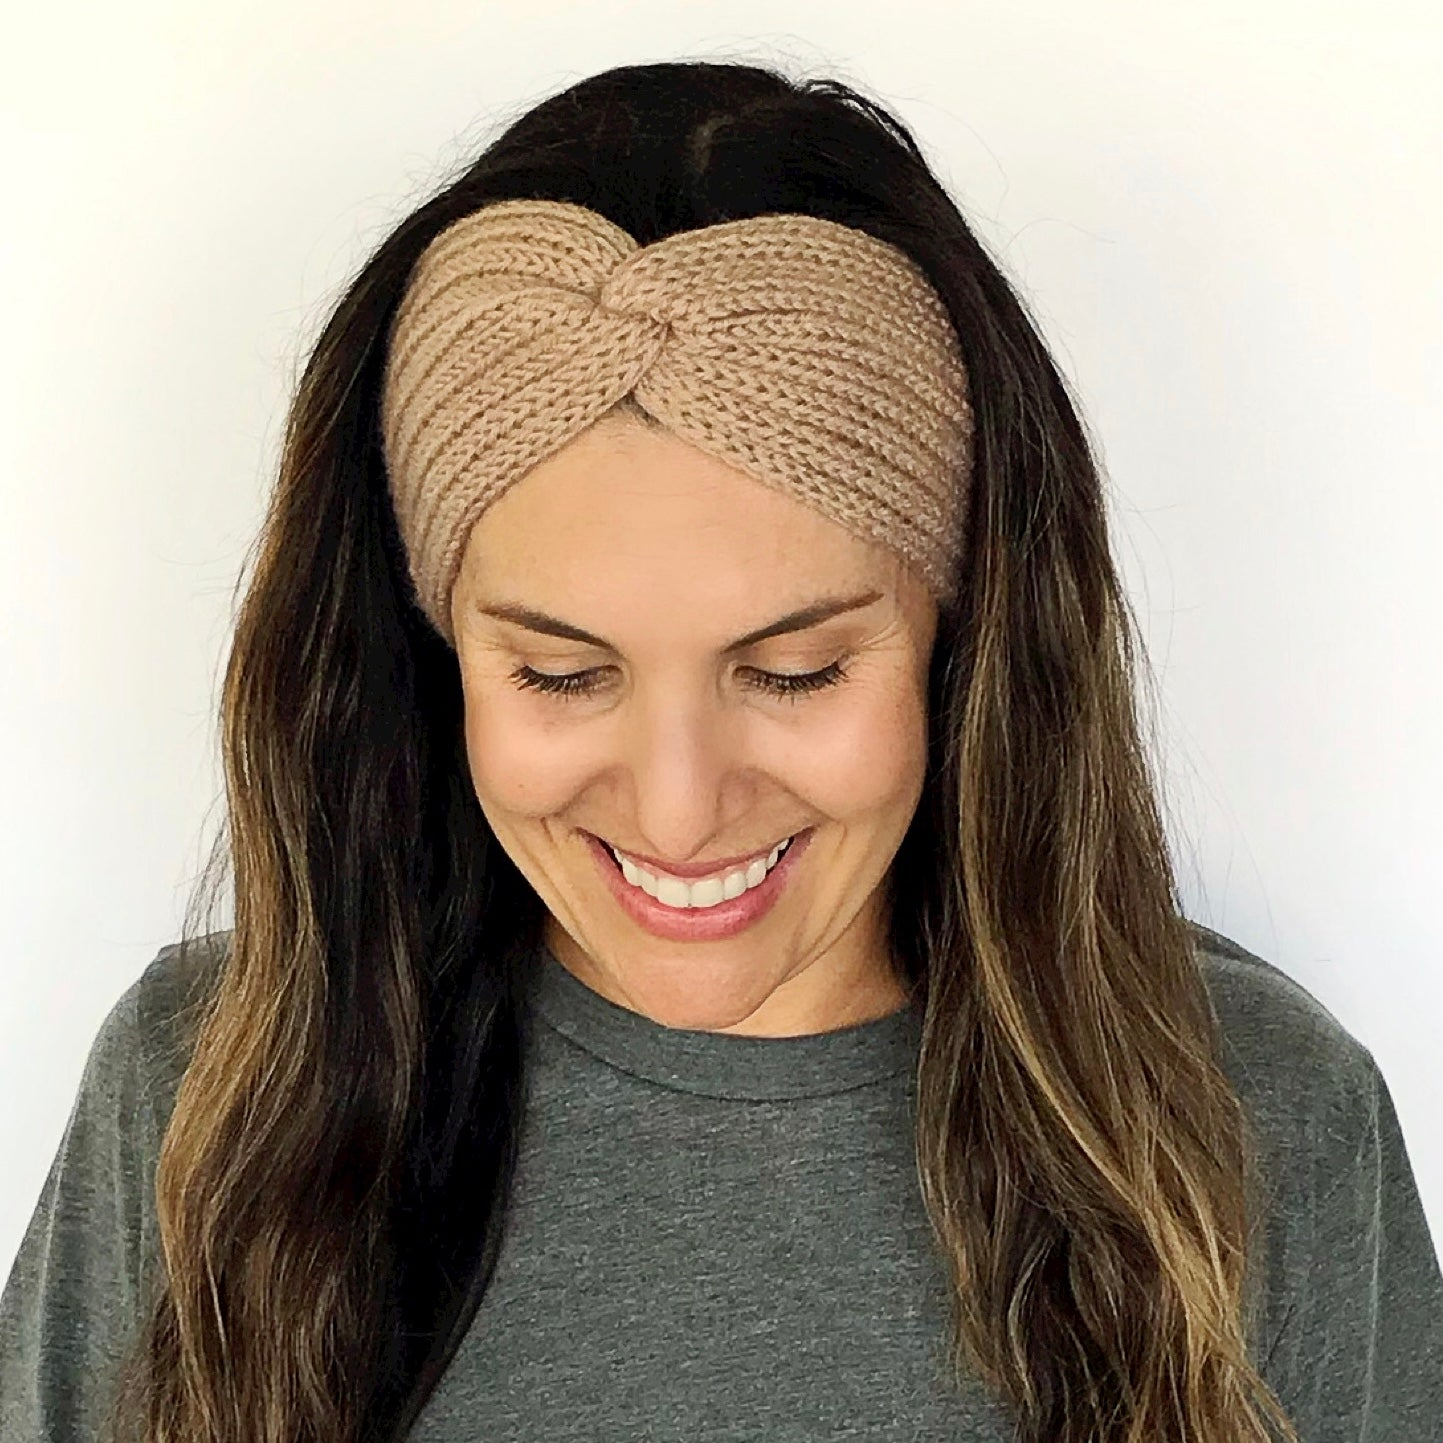 Camel Tan Knitted Turban Headband